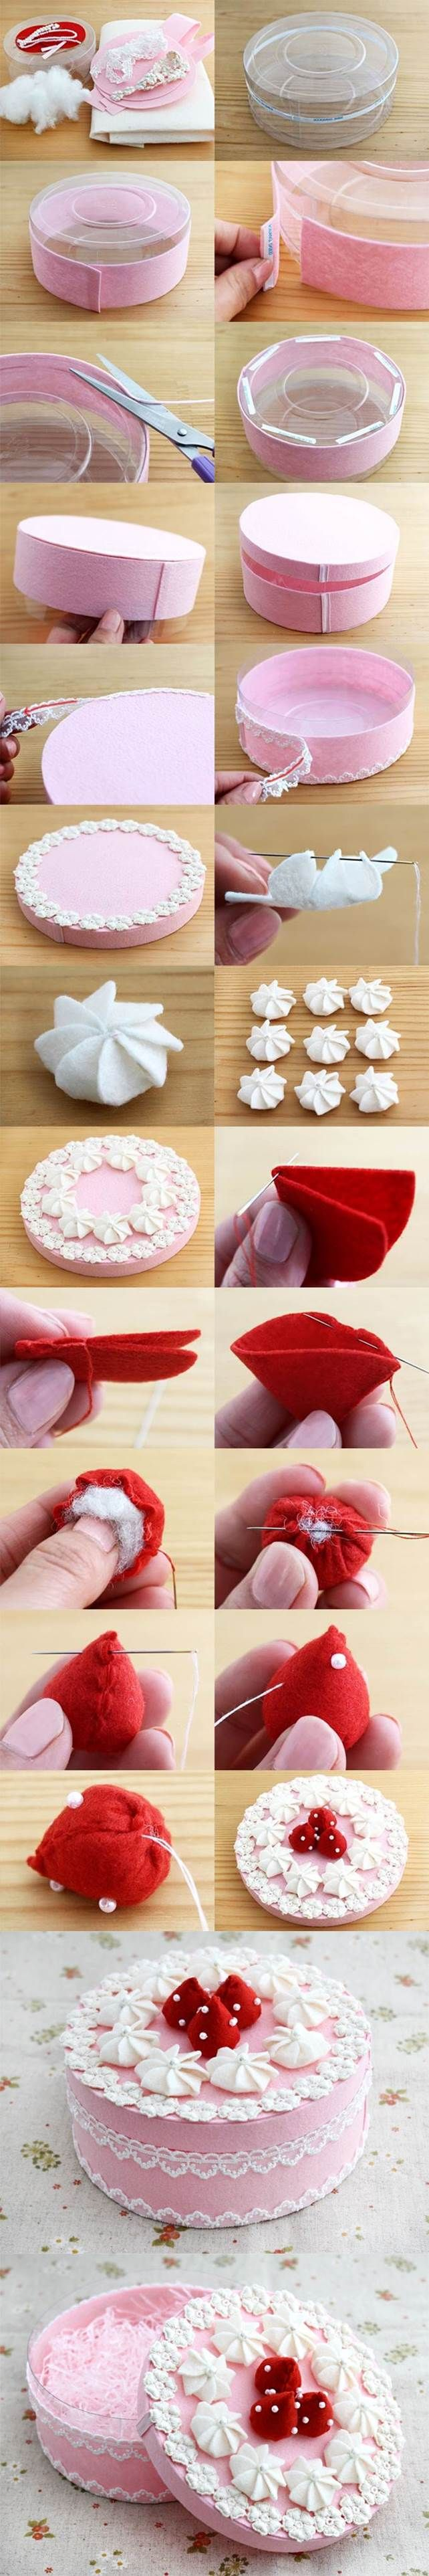 DIY Beautiful Gift Box Decorated Like a Cake Tutorial. Felt crafts.